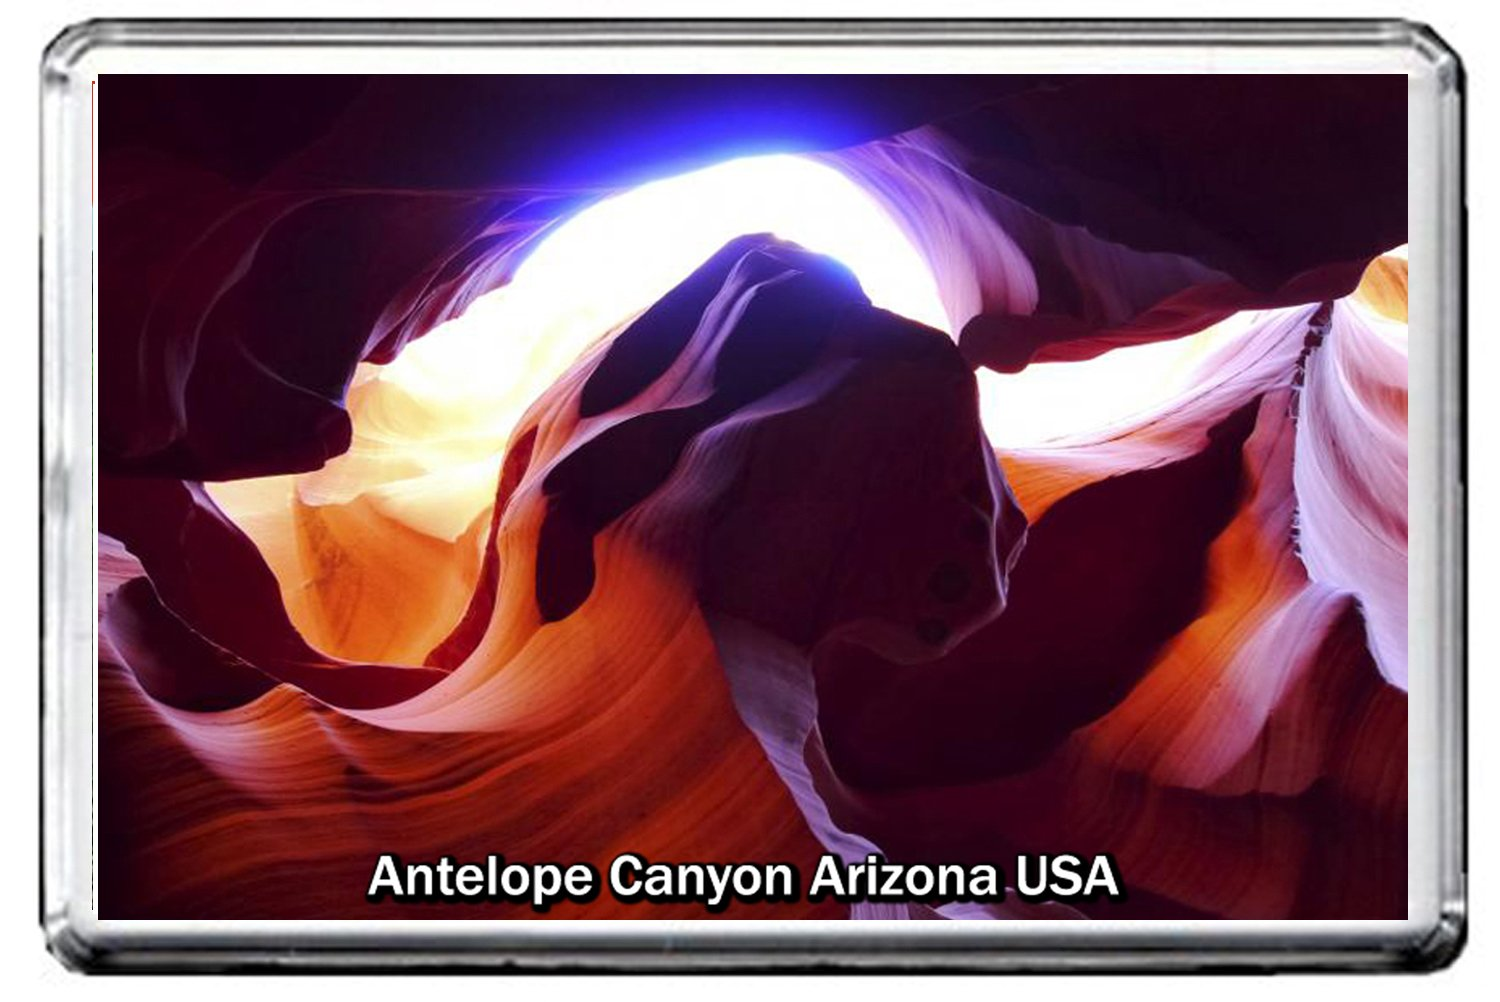 0211 ANTELOPE CANYON FRIDGE MAGNET USA LANDMARKS, USA ATTRACTIONS MAGNETICA CALAMITA FRIGO CFL